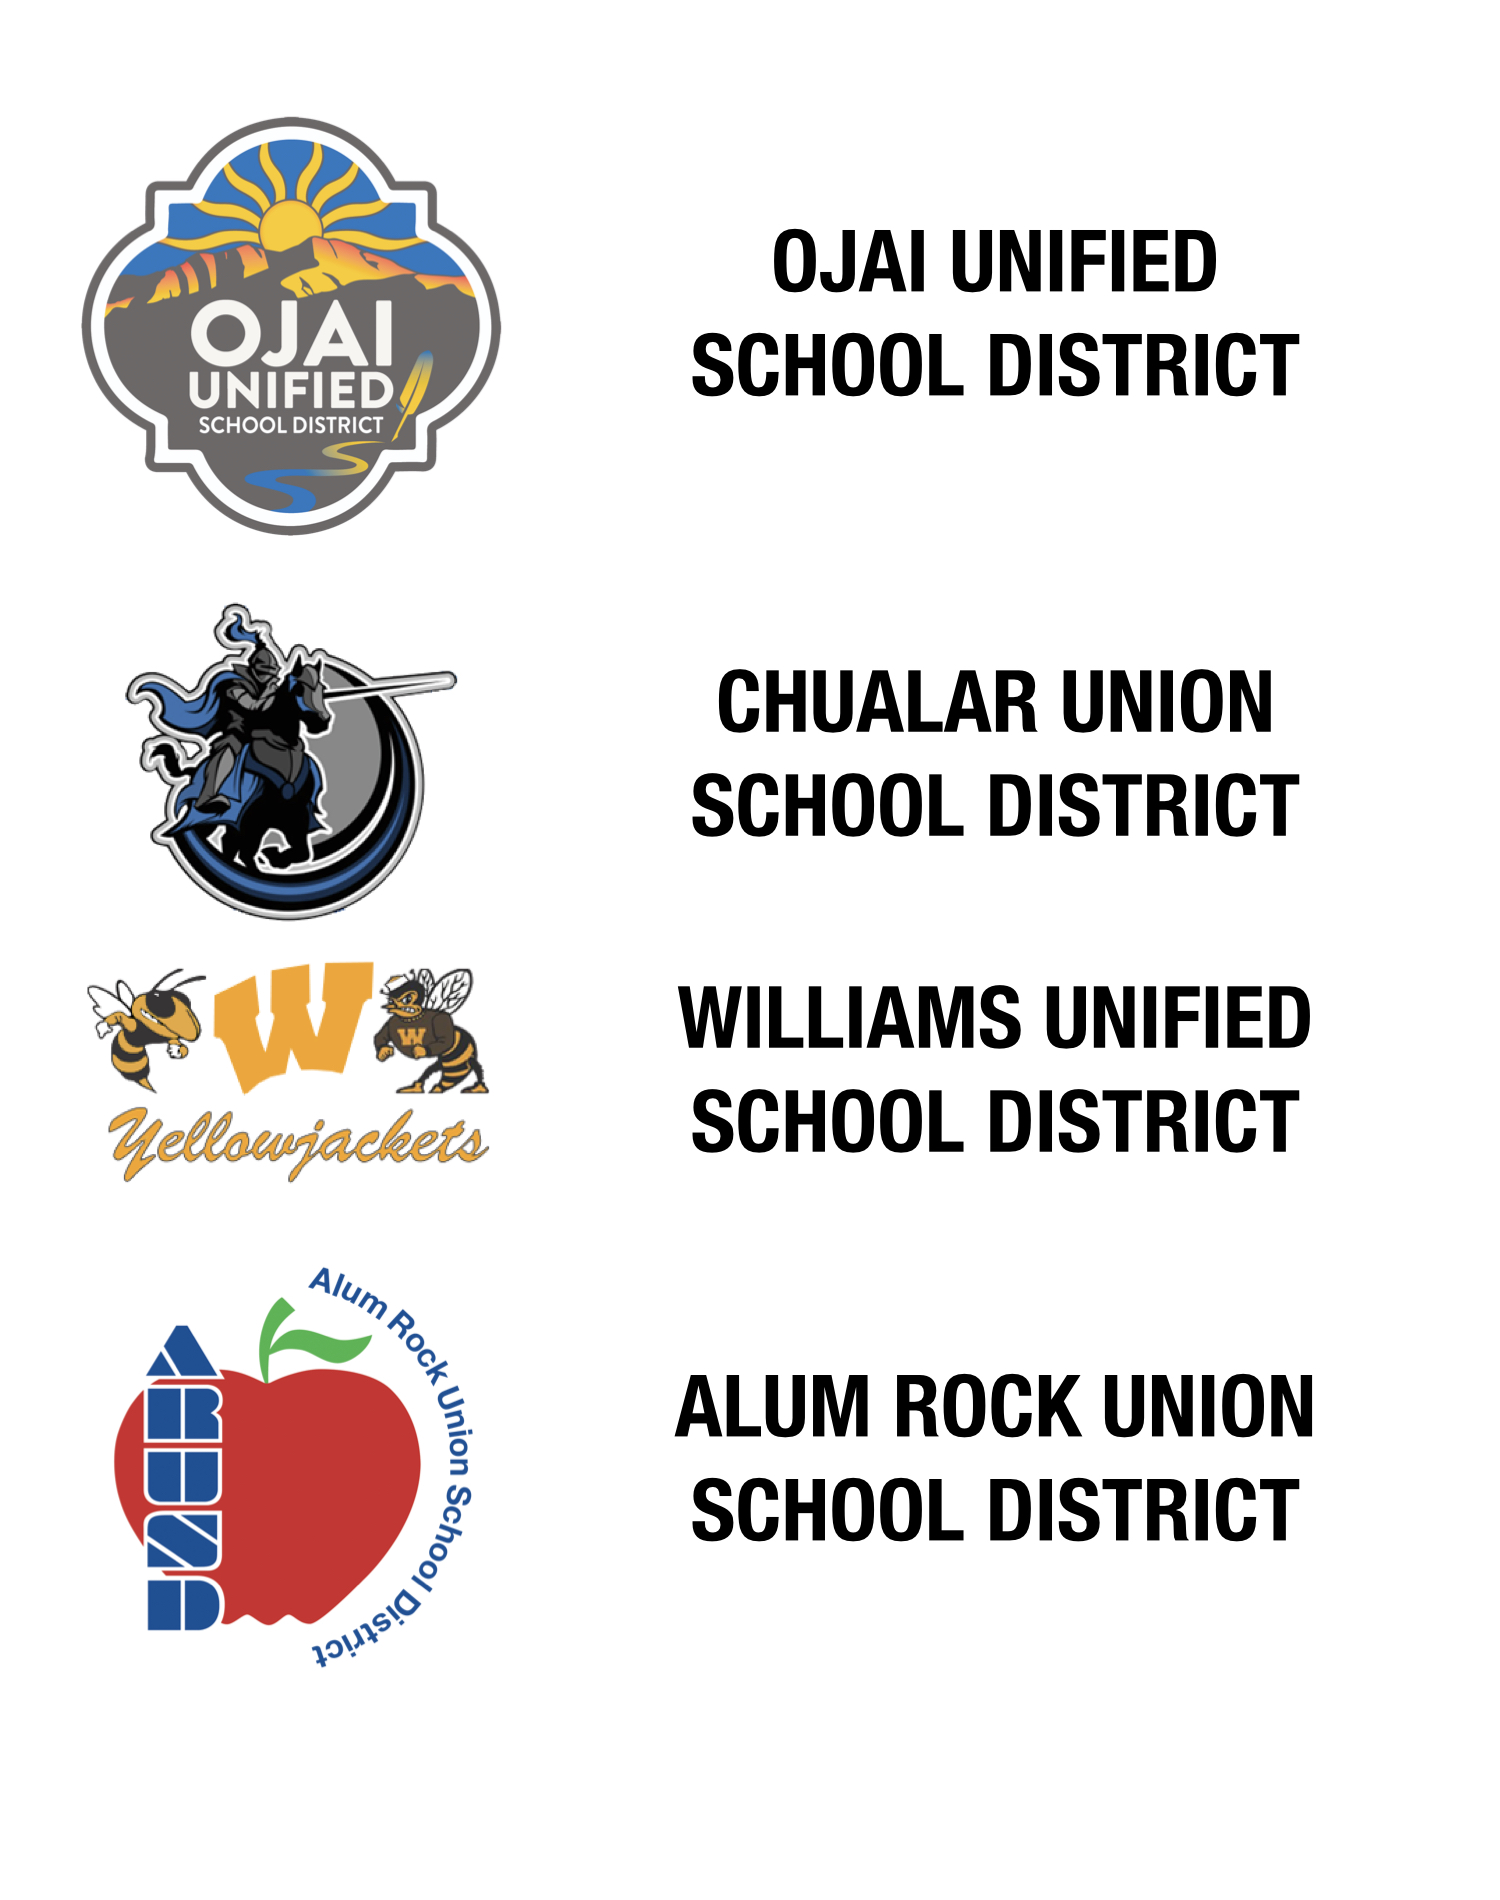 A list of some of our district partners, Ojai, Chualar, Alum Rock, Williams